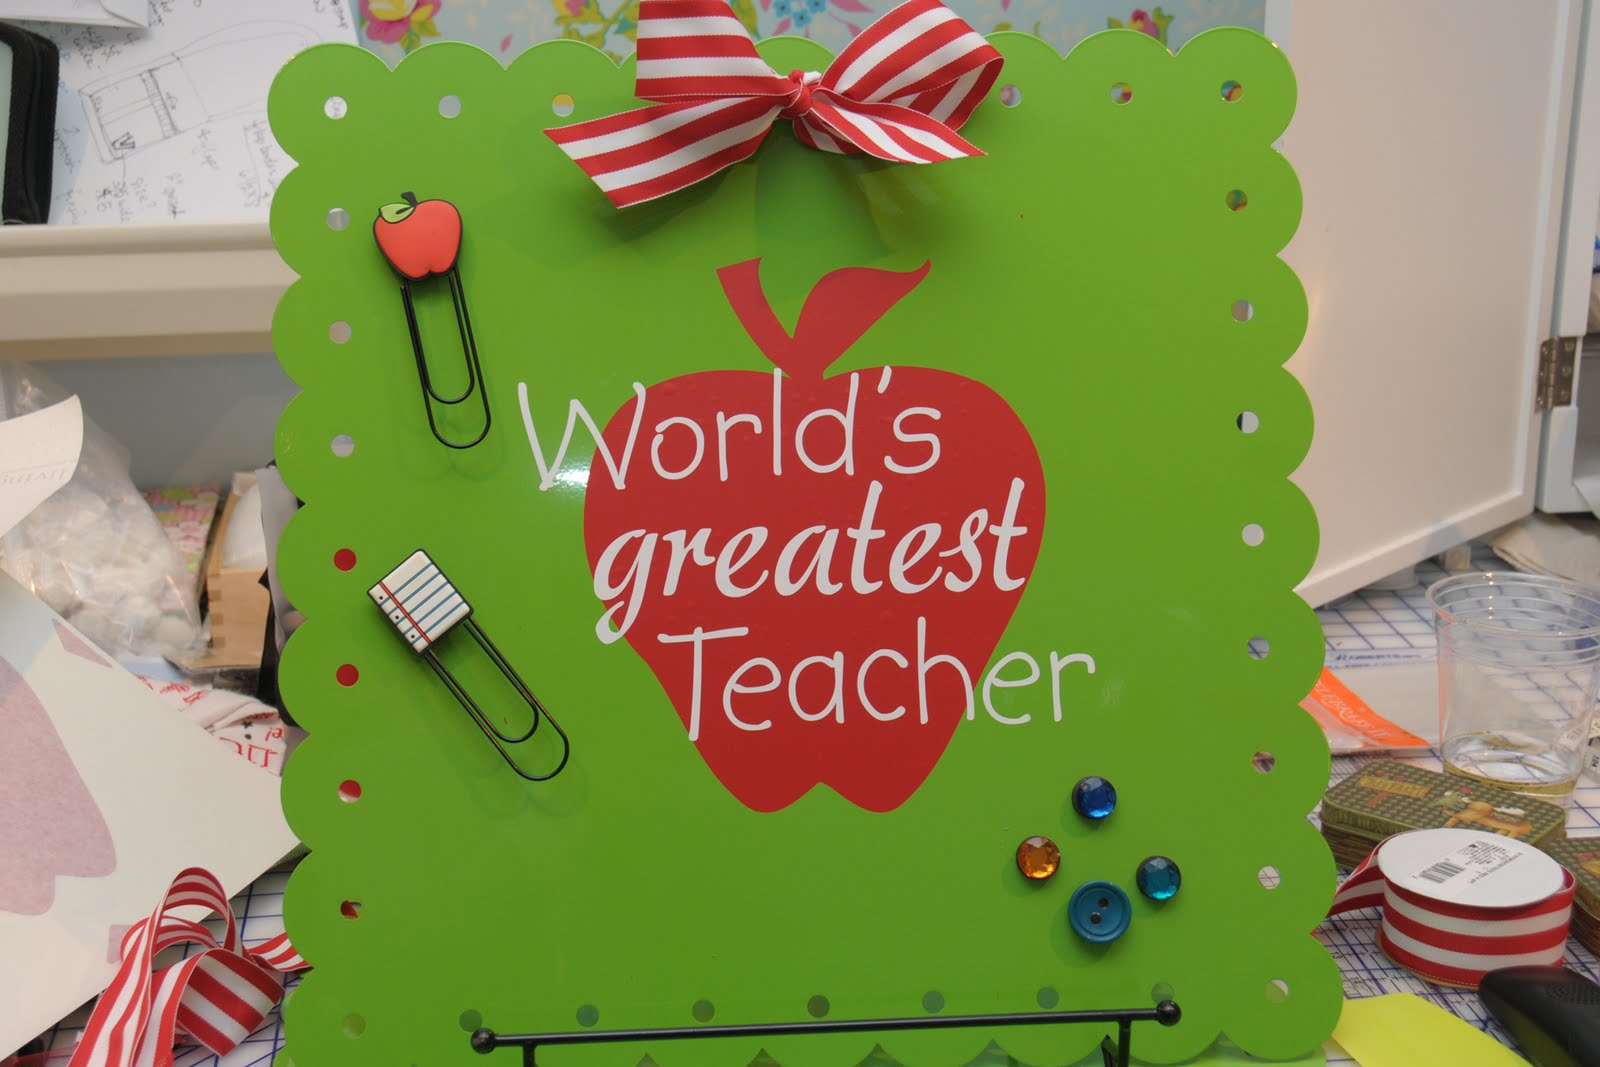 Scrapbook ideas for teachers - Circle Clipboard Covered With Scrapbook Paper With A Movie Gift Card Attached